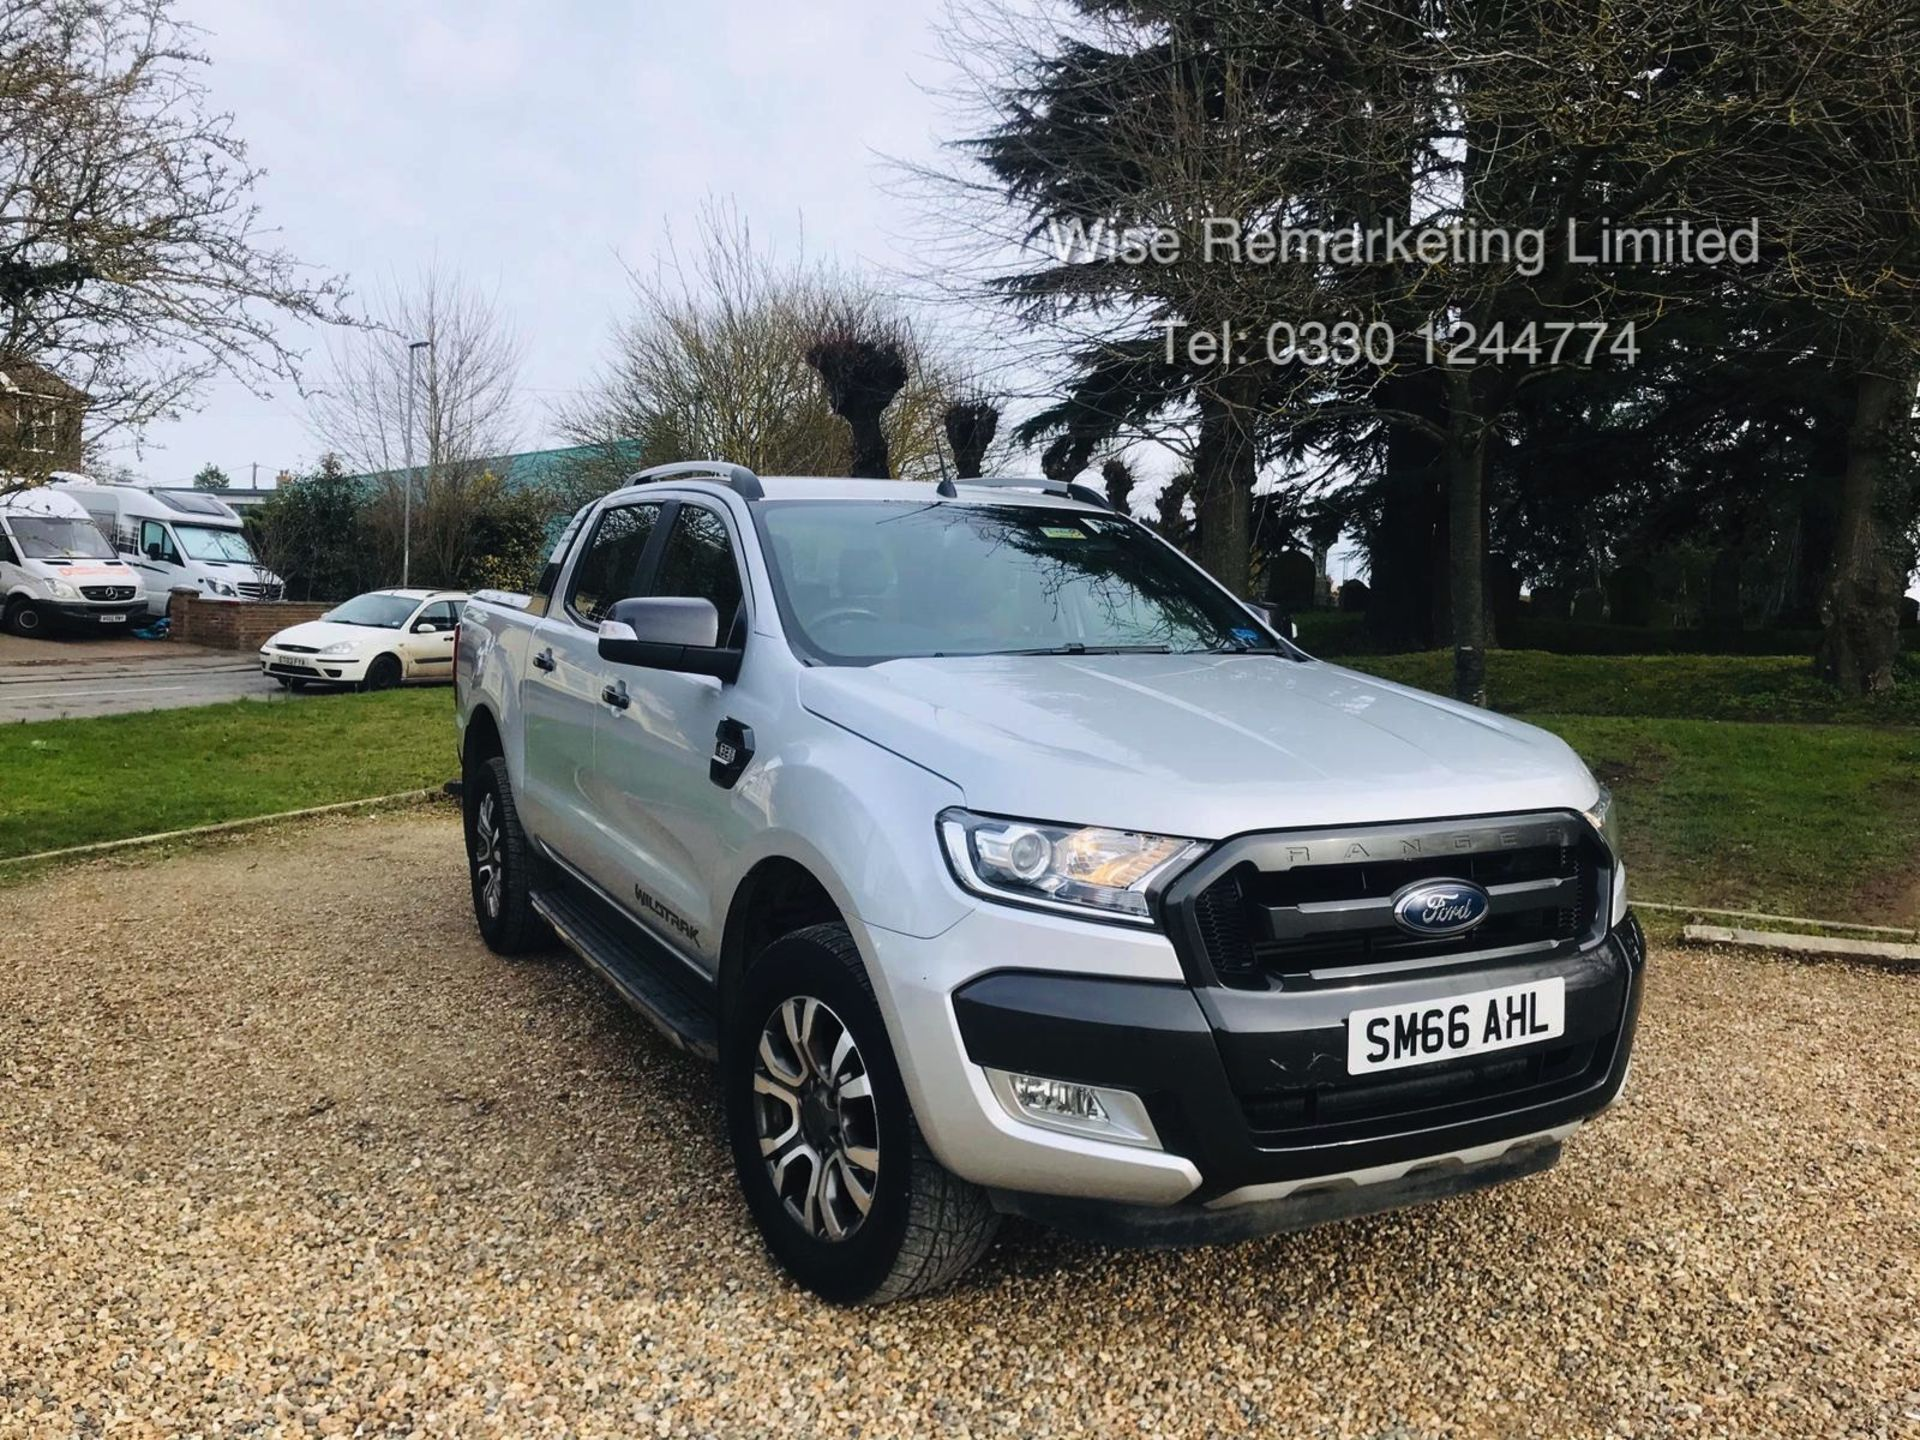 Ford Ranger 3.2 TDCI WILDTRAK - Auto - 2017 Model - 1 Former Keeper - 4x4 - TOP OF THE RANGE - Image 8 of 16